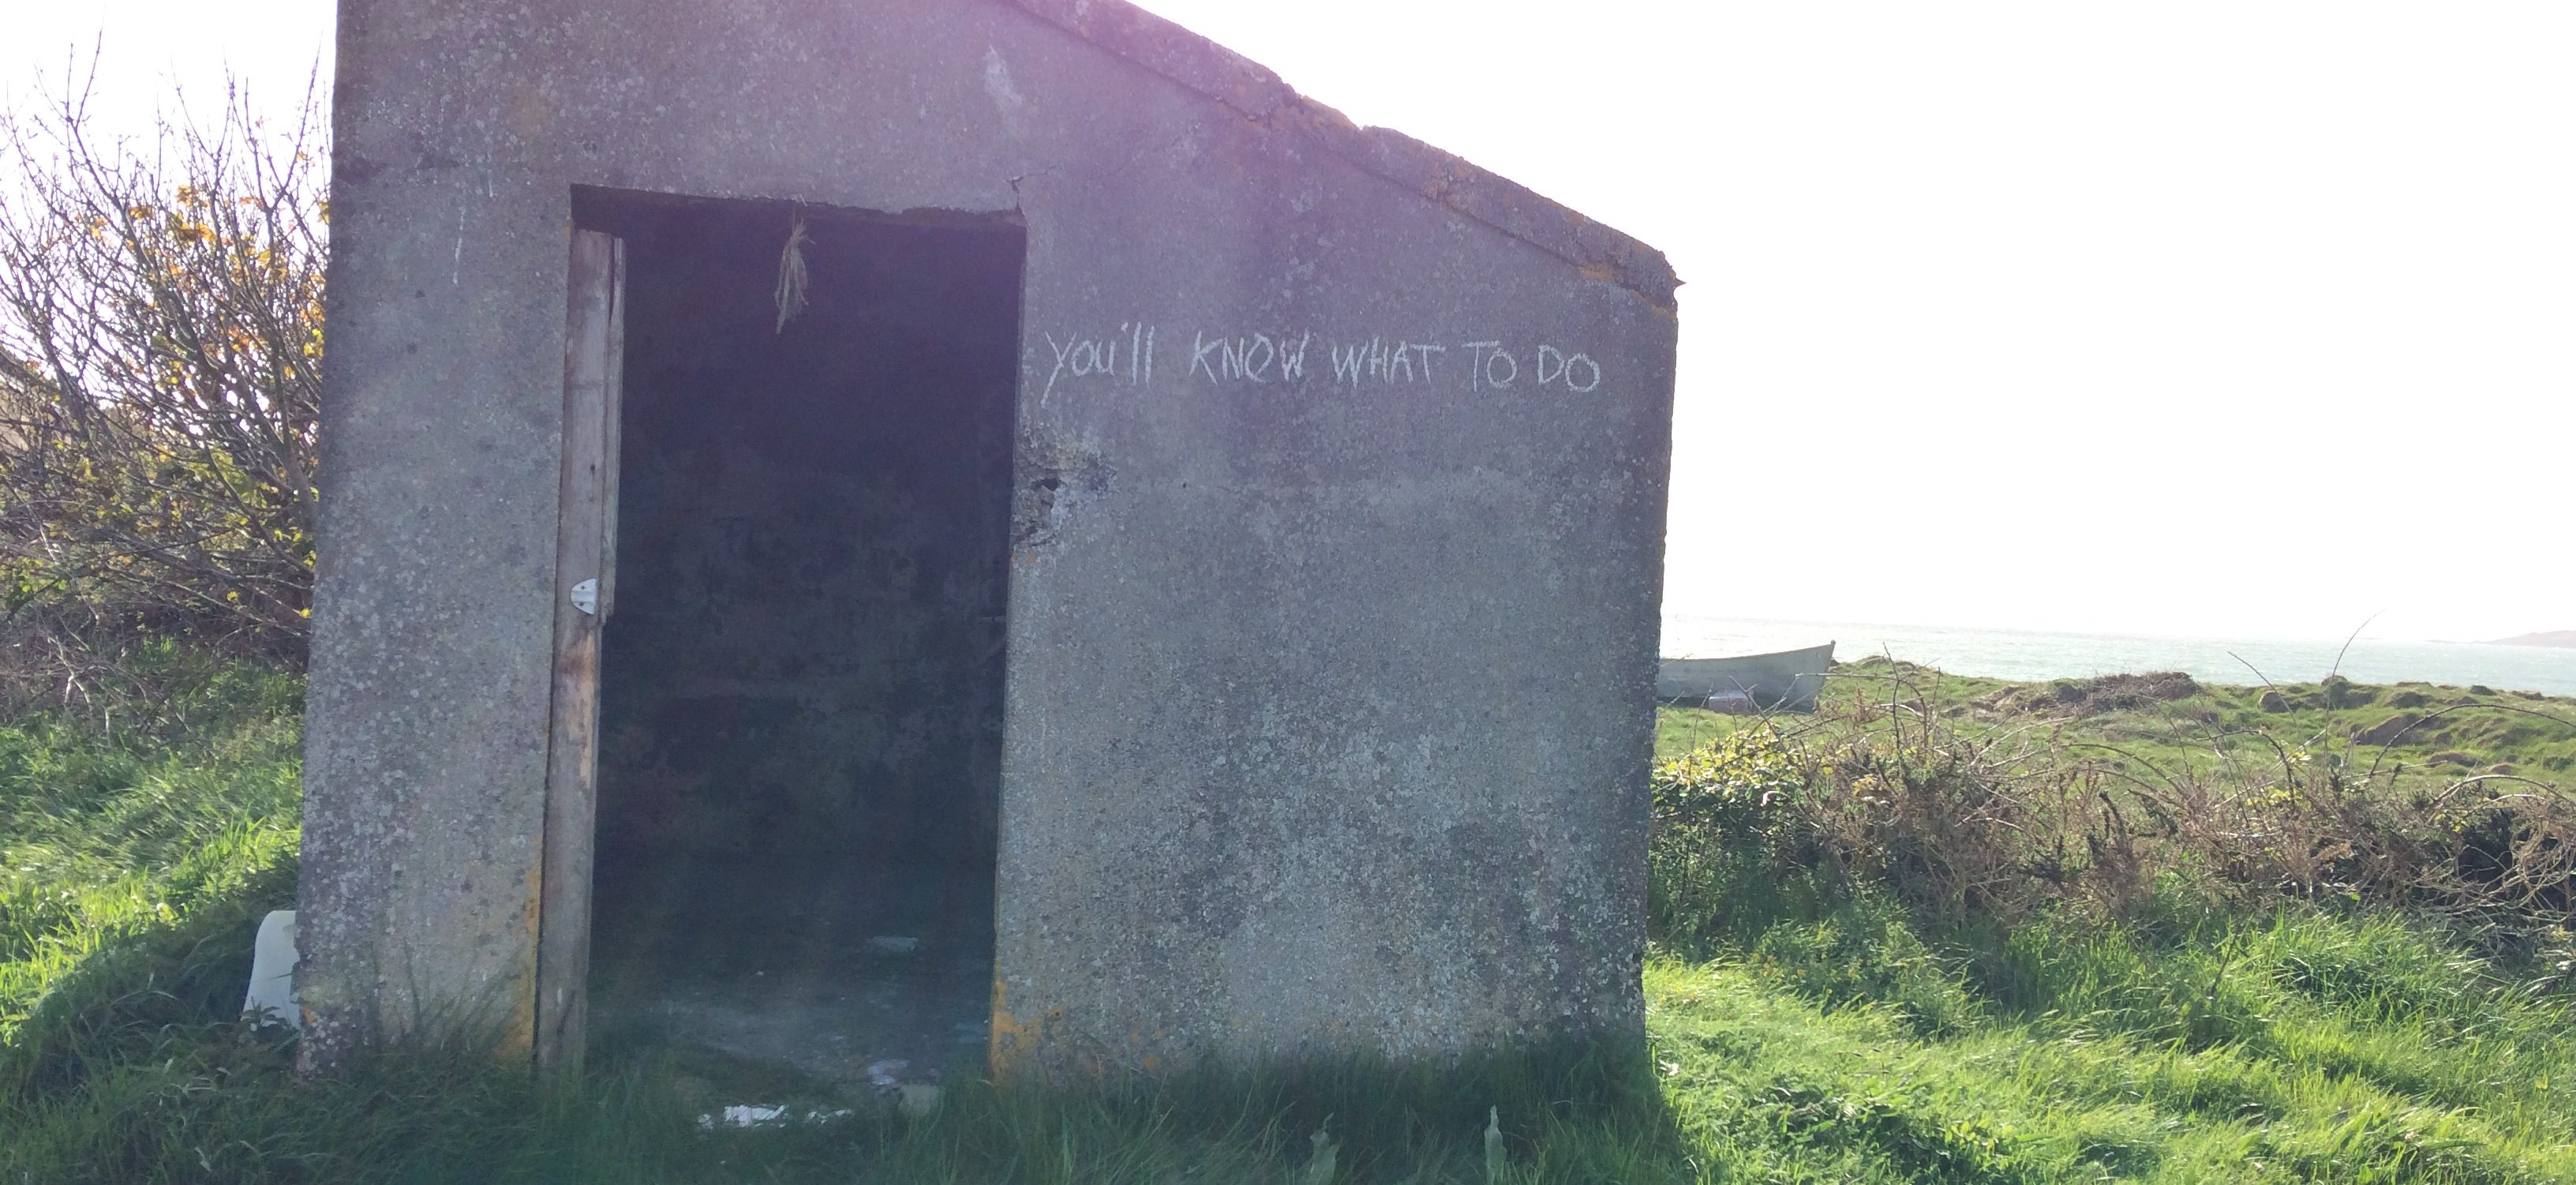 """A concrete hut sits on overgrown grass somewhere wild. The shelter has a steeply sloping roof, slanting down from a sharp apex on the far left. of the image. Bright sunlight coming from directly behind the shelter makes a shadow that reaches towards the front of the picture. To the right of the shelter an uneven edge to the land and the prow of a small boat imply there is ocean beyond. The shelter has a doorway open in the left half of the visible wall. It is dark inside, just about possible to make out rough brickwork, and something like a bunch of drying herbs hanging from the lintel. On the expanse of concrete wall to the right of the doorway, crude chalk writing reads """"you'll know what to do"""""""